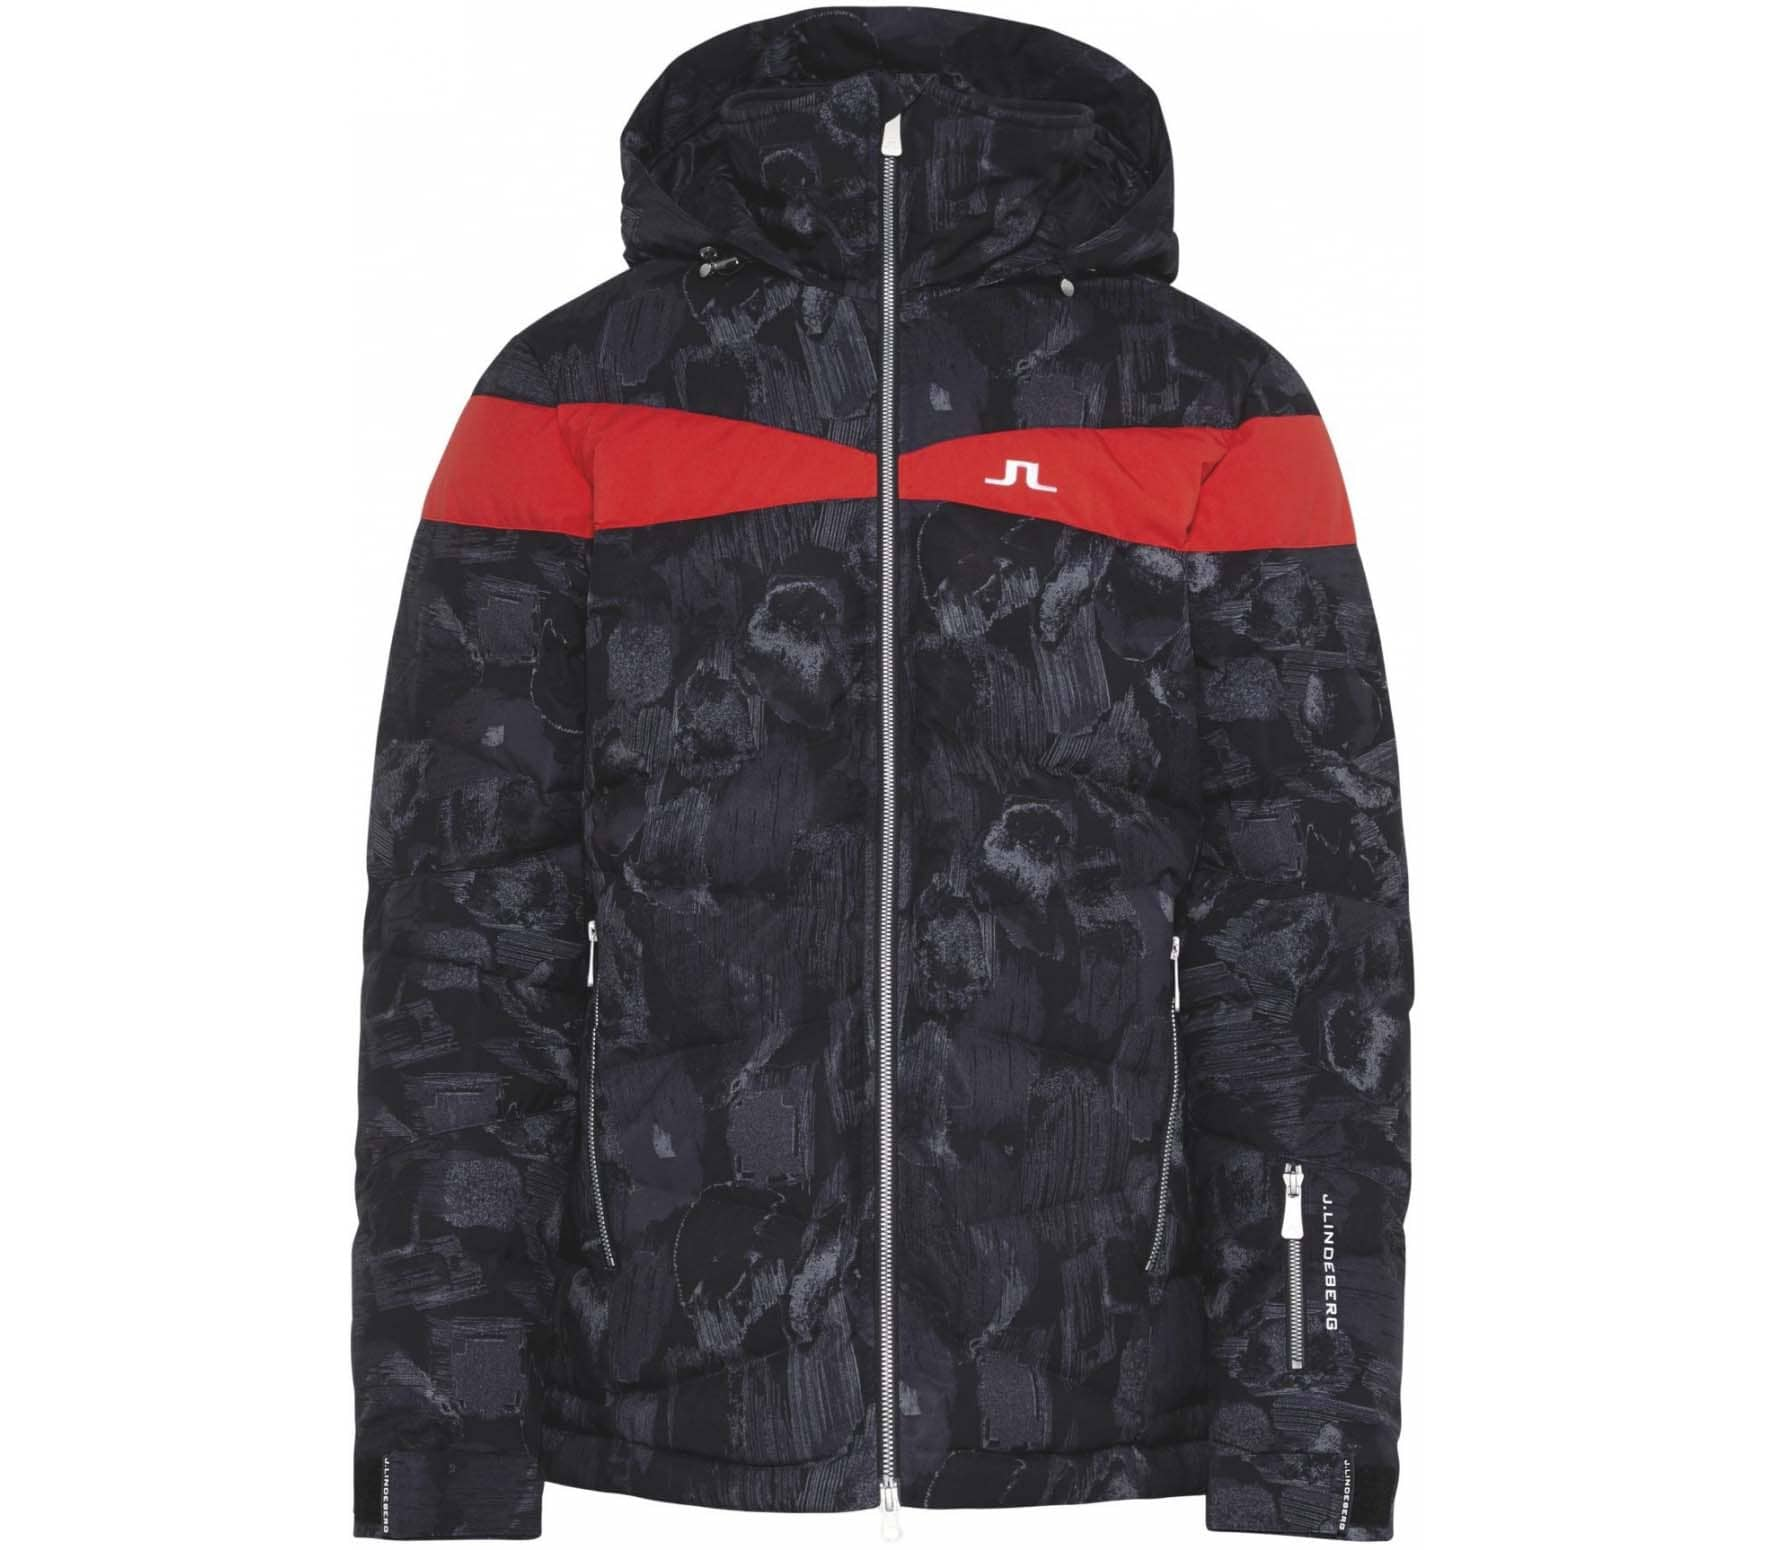 J.Lindeberg - Crillon Down JL 2Lrint men's skis jacket (black)